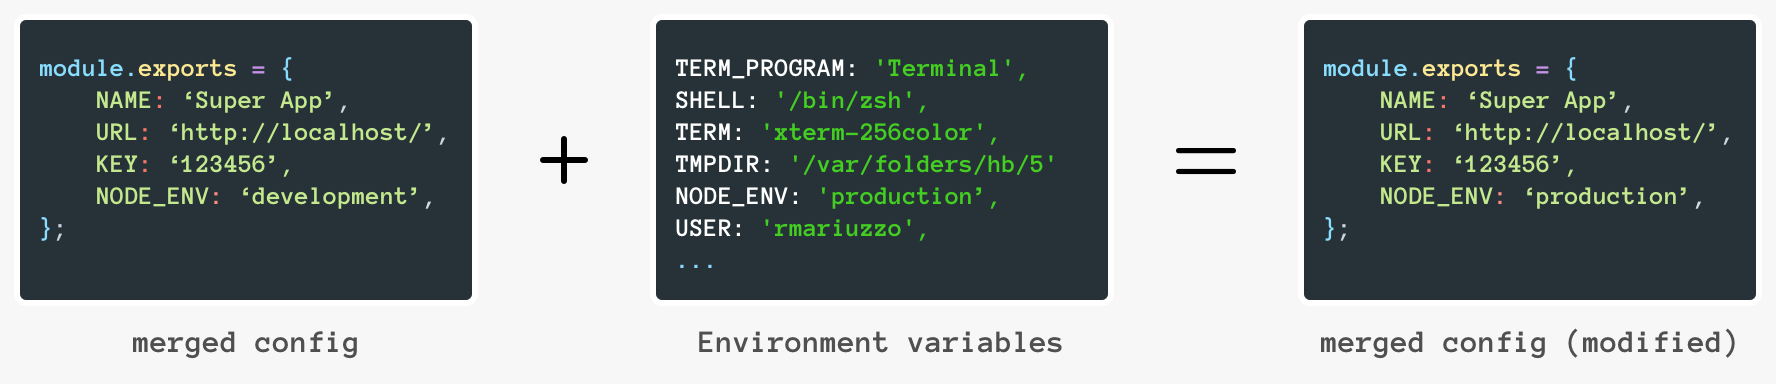 Environment variables replacements